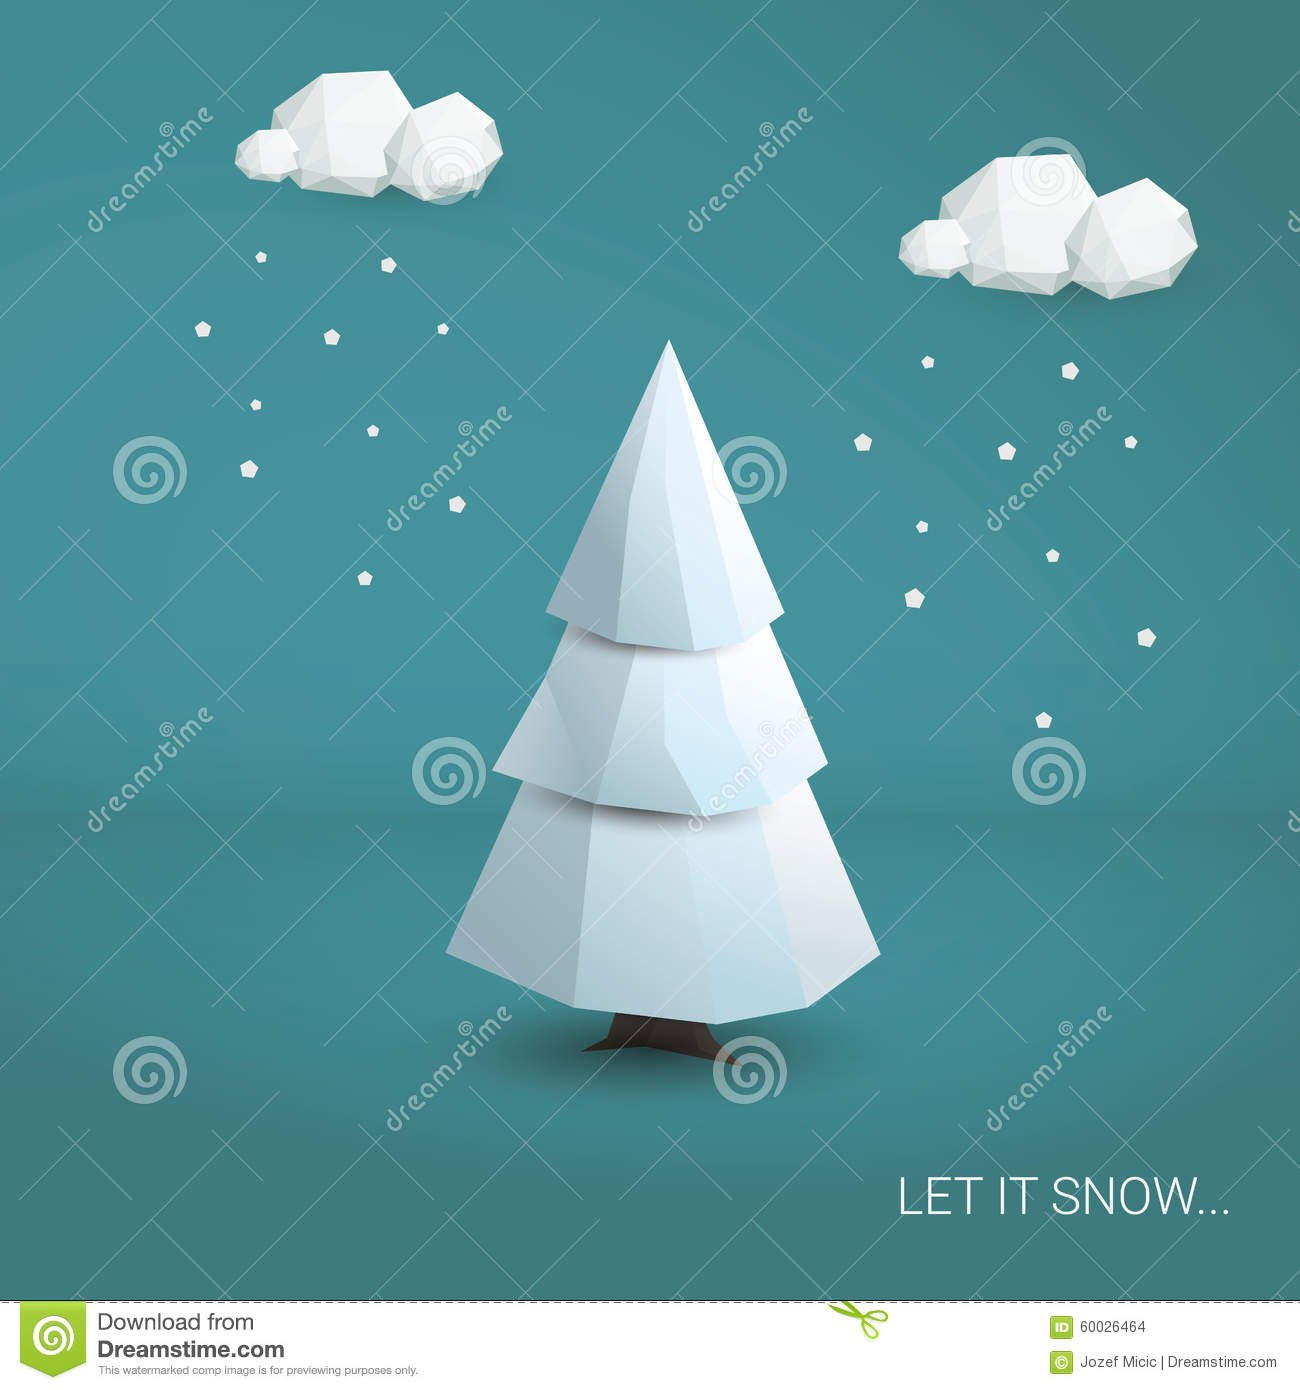 D Low Poly Christmas Tree Card Template Stock Illustration Regarding 3D Christmas Tree Card Template